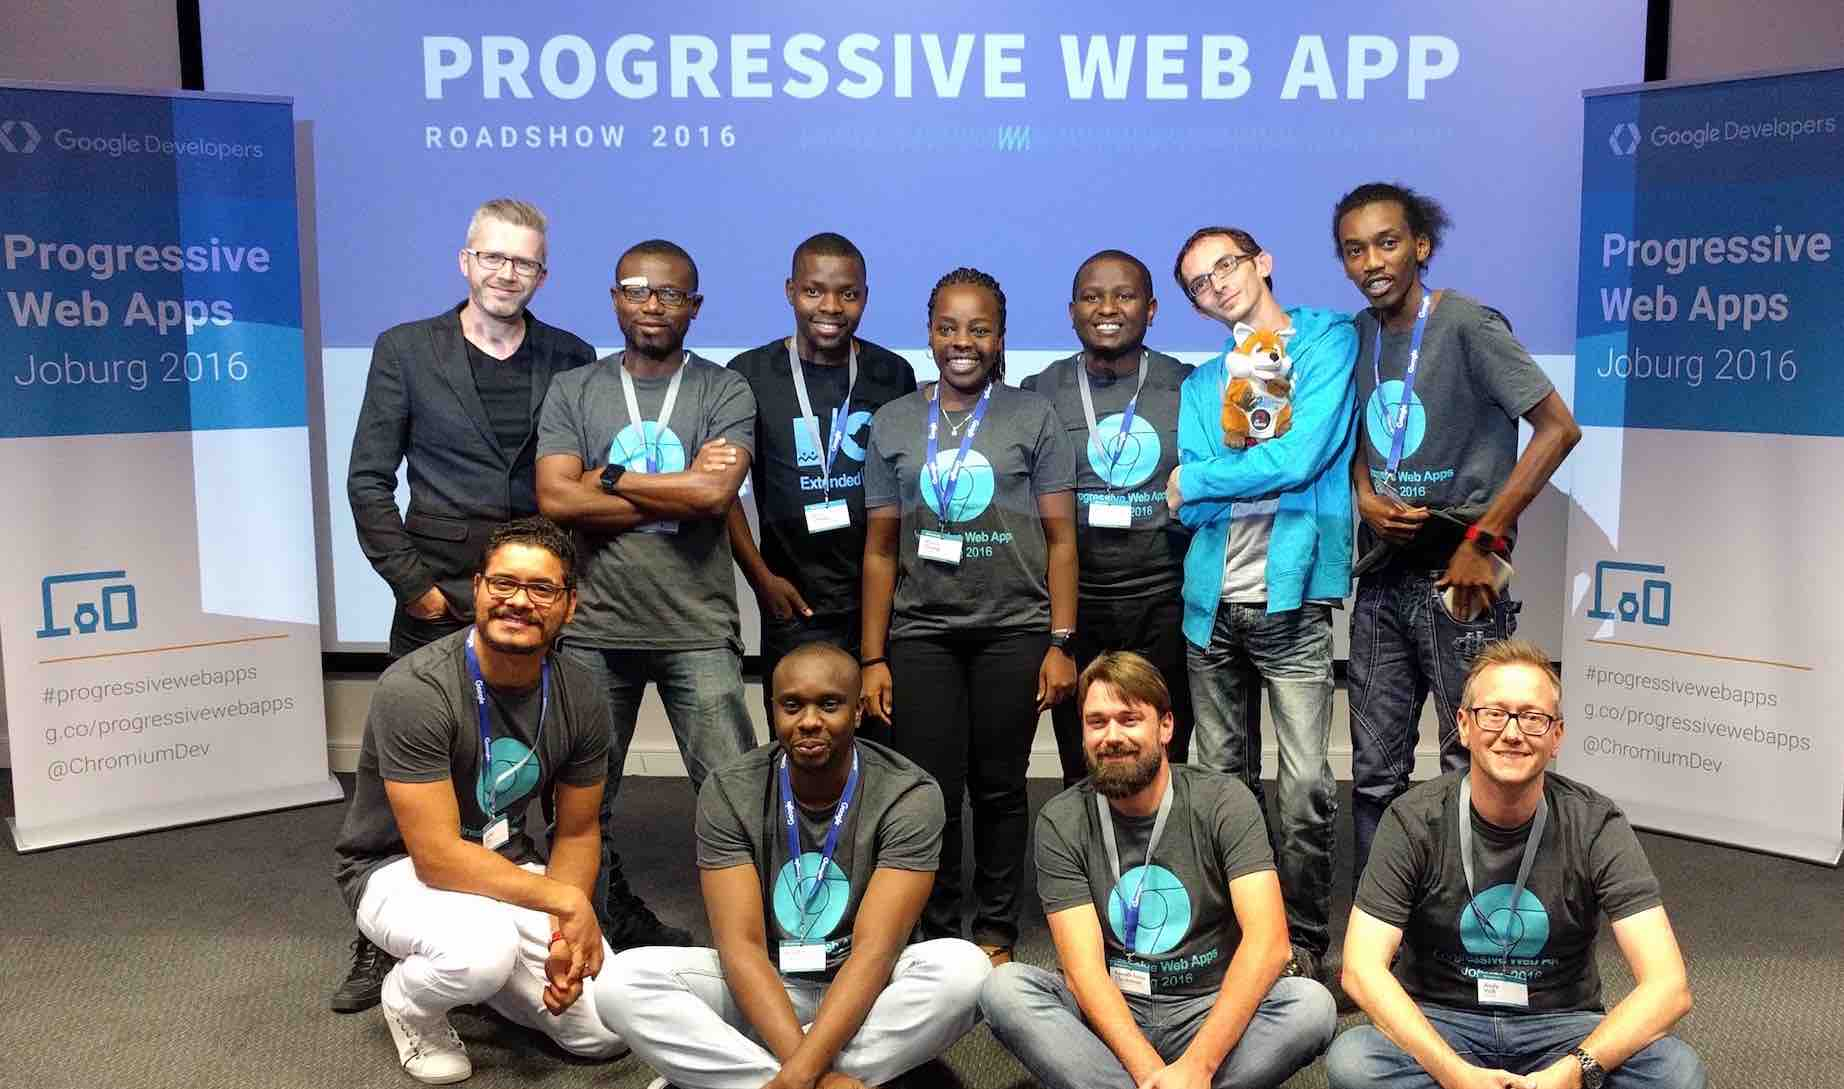 How are progressive web apps making the African web better? - Blog